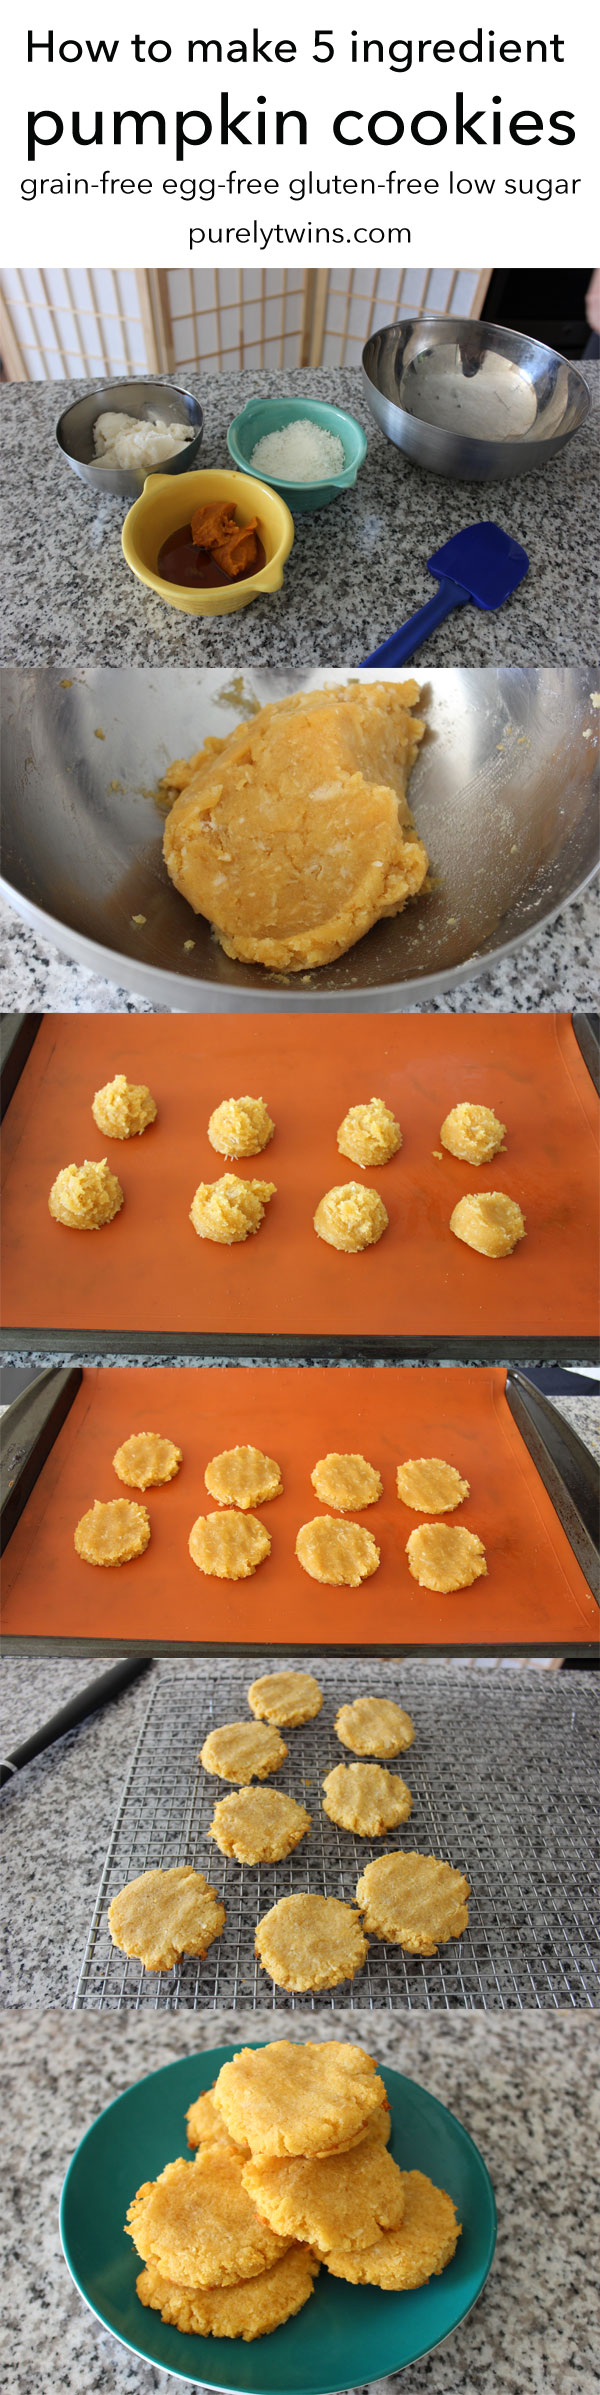 how-to-make-5-ingredient-low-sugar-egg-free-grain-free-pumpkin-cookies